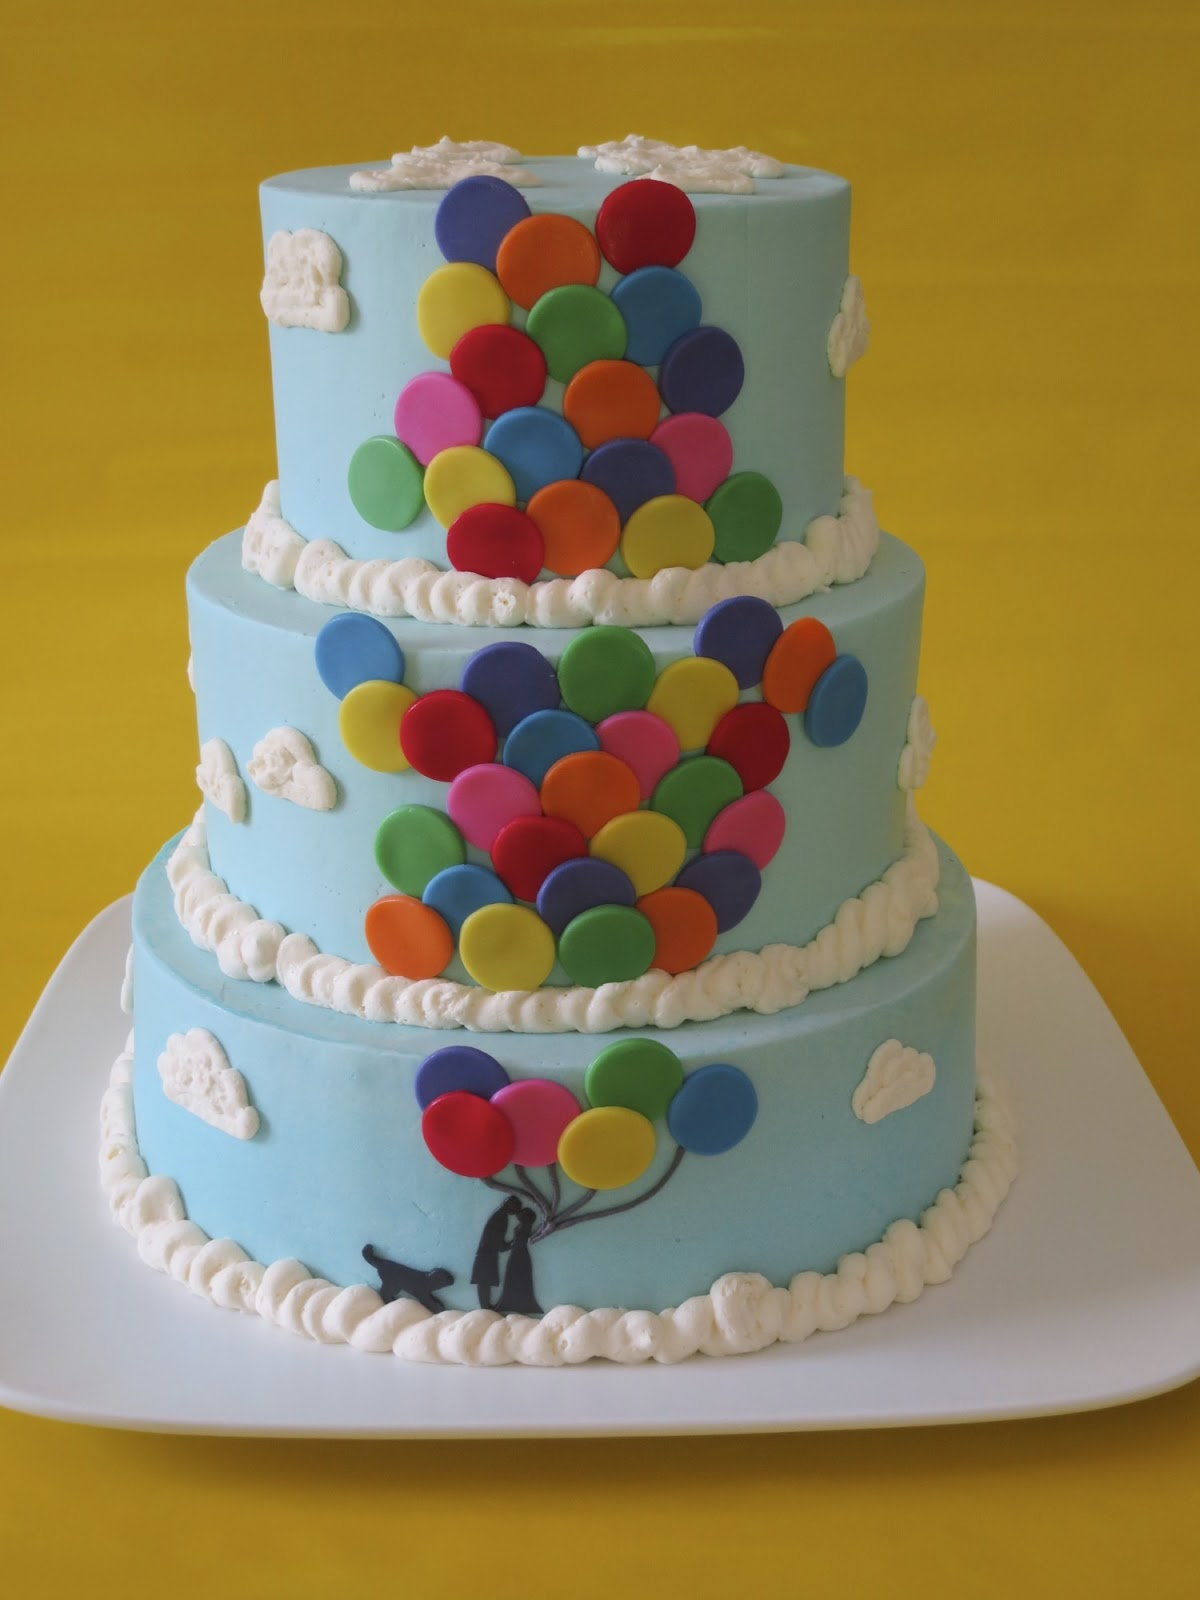 Cake Design Ballarat : Christina s Kitchen Art: Balloon Wedding Cake